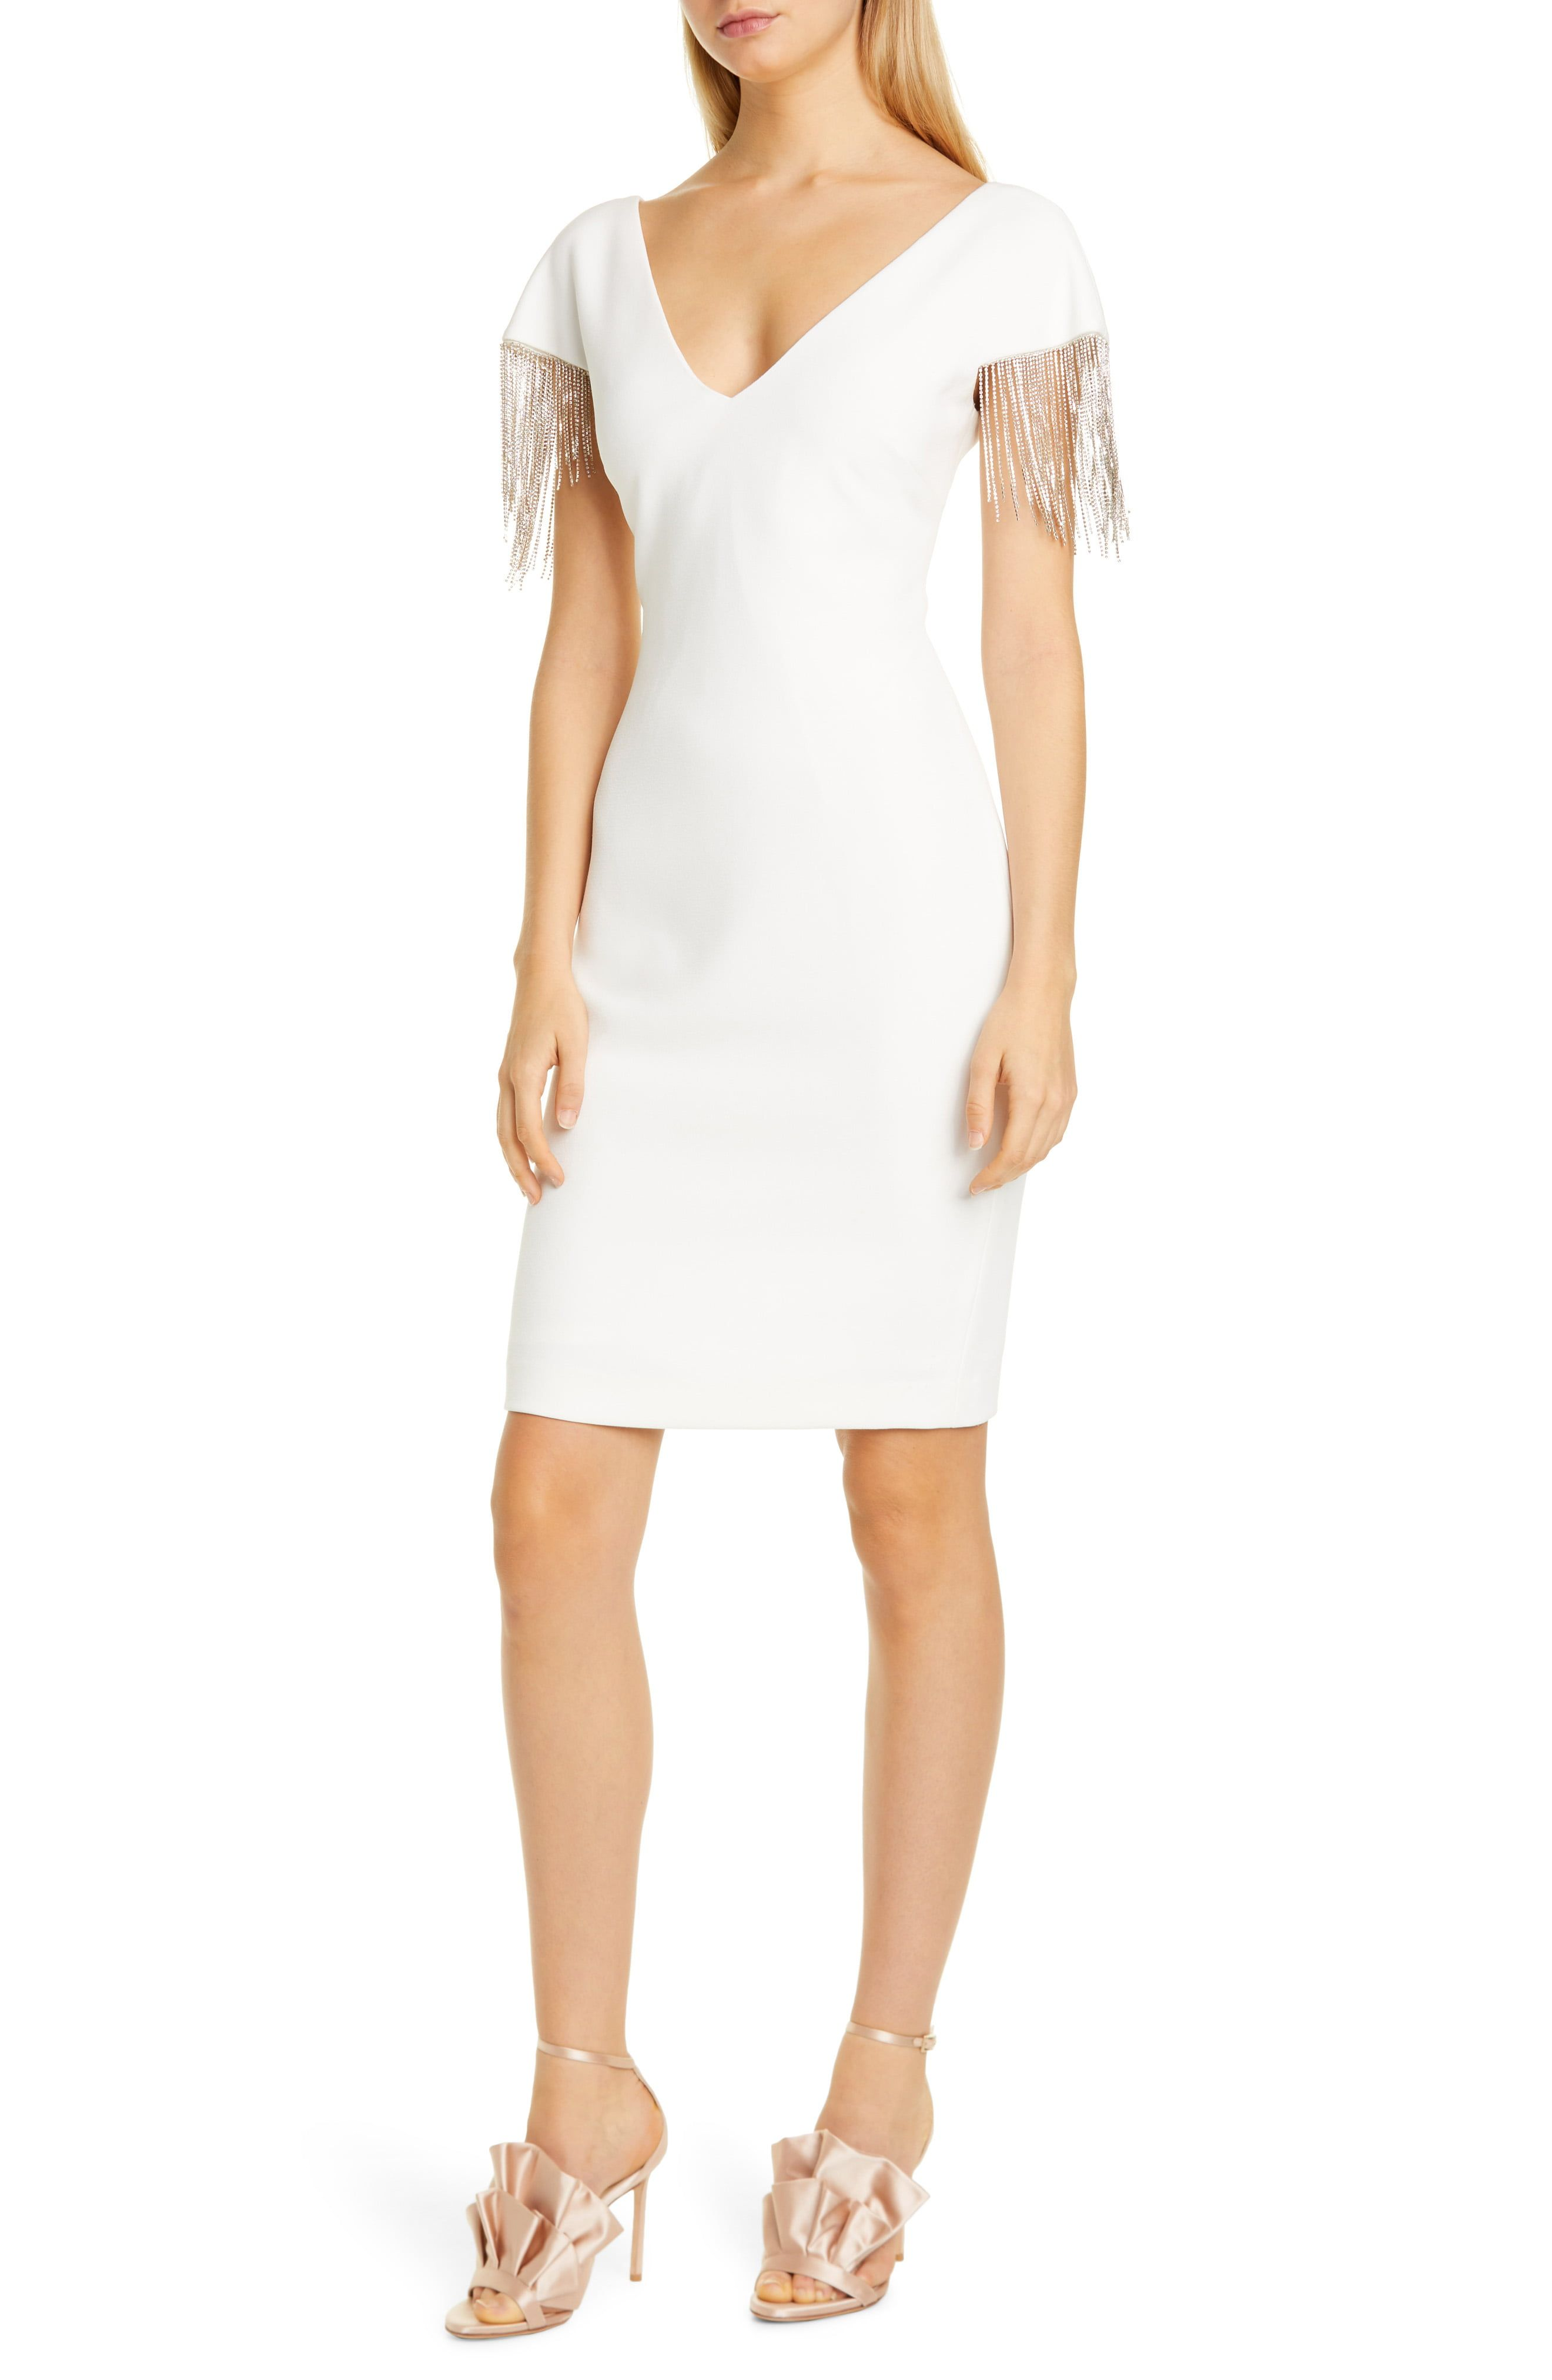 Badgley Mischka Chain Detail Crepe Cocktail Dress Nordstrom Fashion Clothes Women Nordstrom Dresses Prom Dresses With Sleeves [ 4048 x 2640 Pixel ]